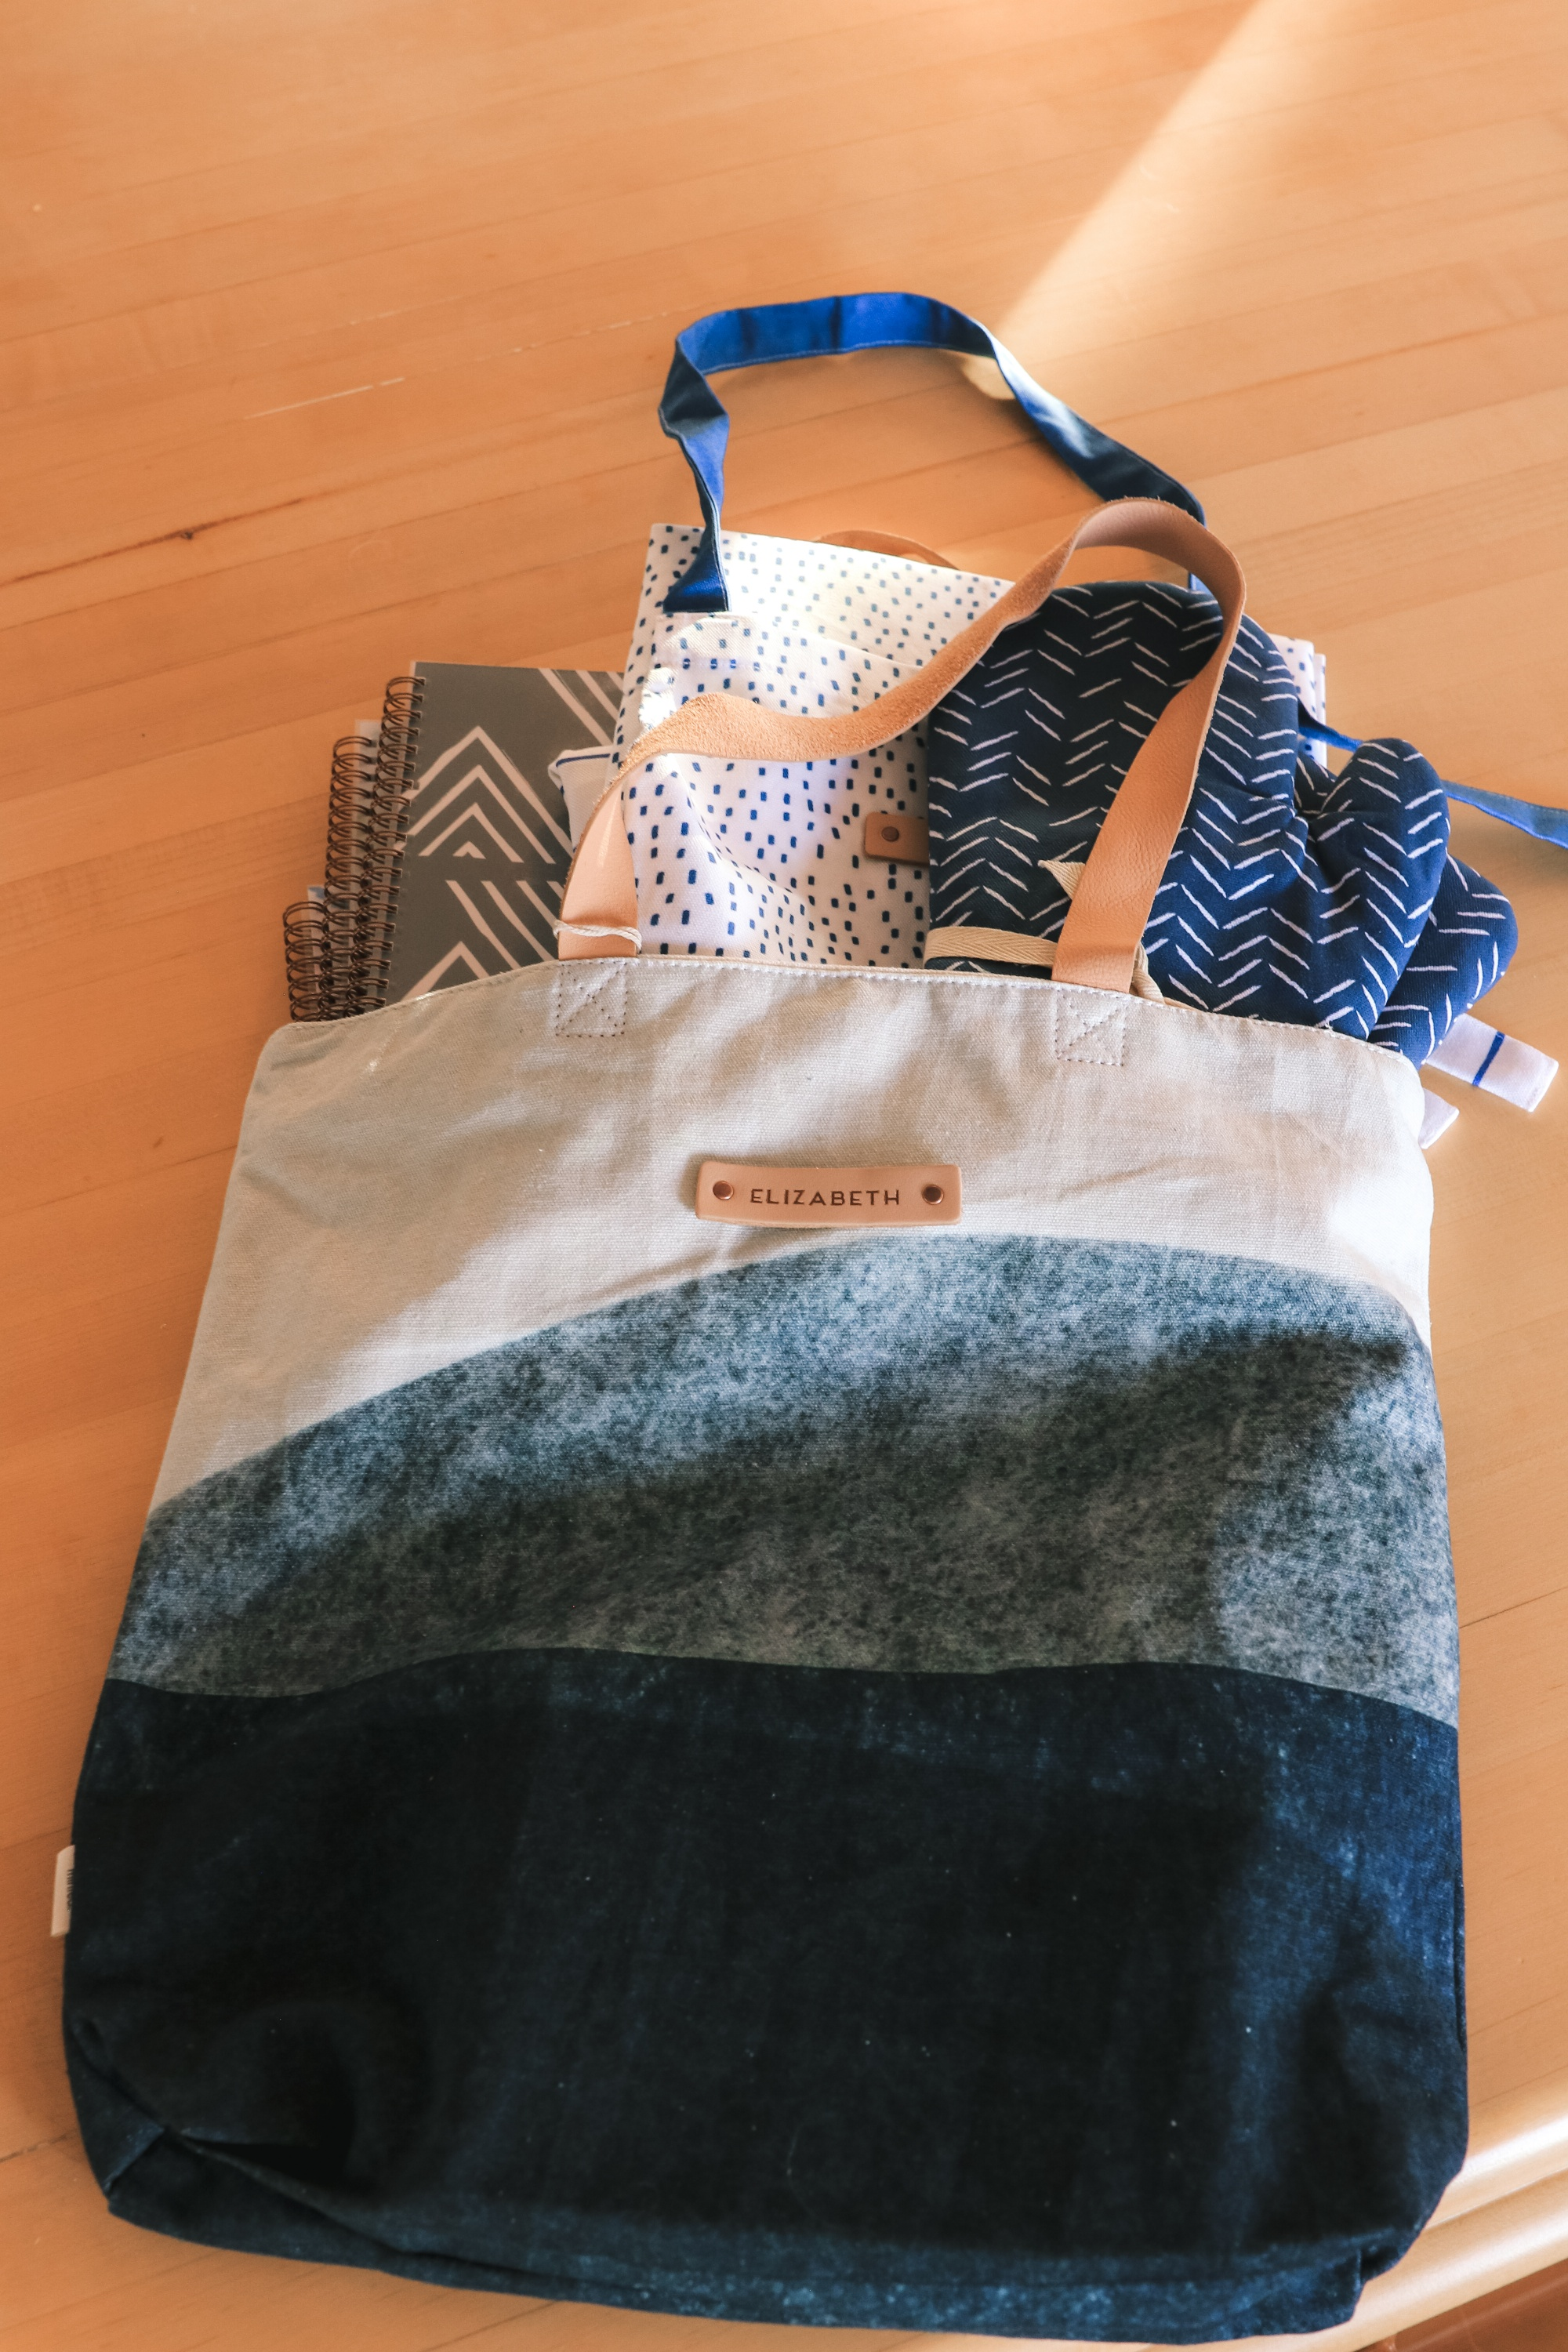 Personalized Gifts, Erin Busbee of Busbee Style sharing a blue and white personalized tote bag with three personalized planners, oven mitts, and aprons from Minted in Telluride, Colorado